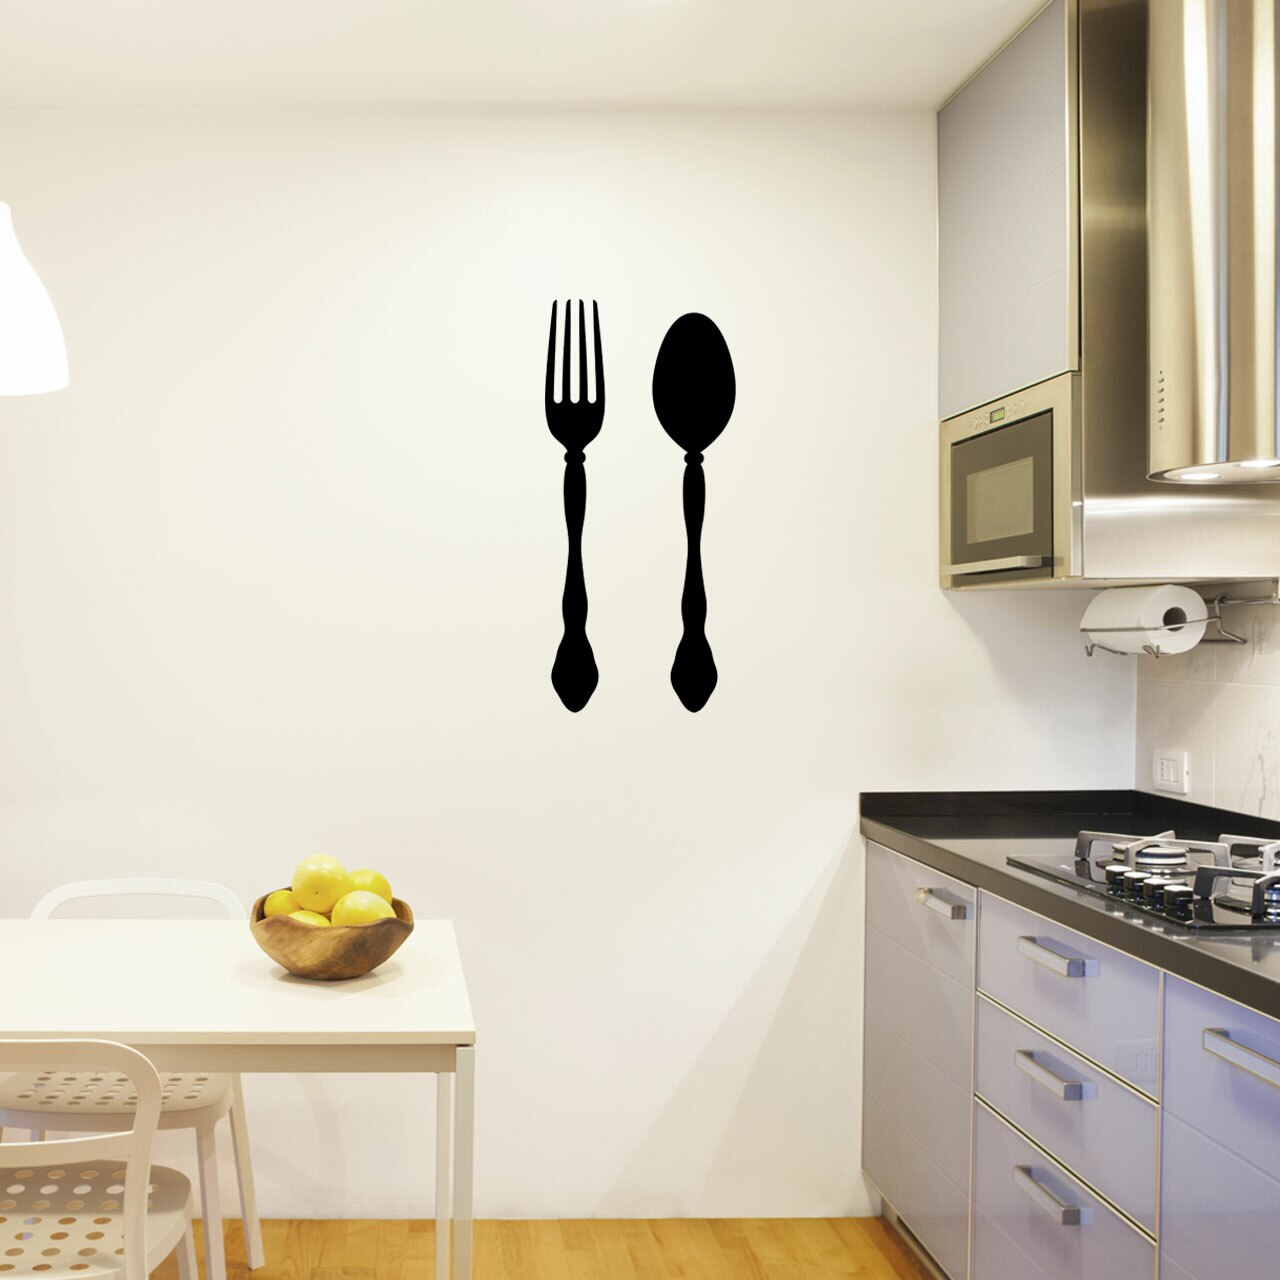 Fork & Spoon pictured side-by-side in black vinyl applied to a white kitchen wall